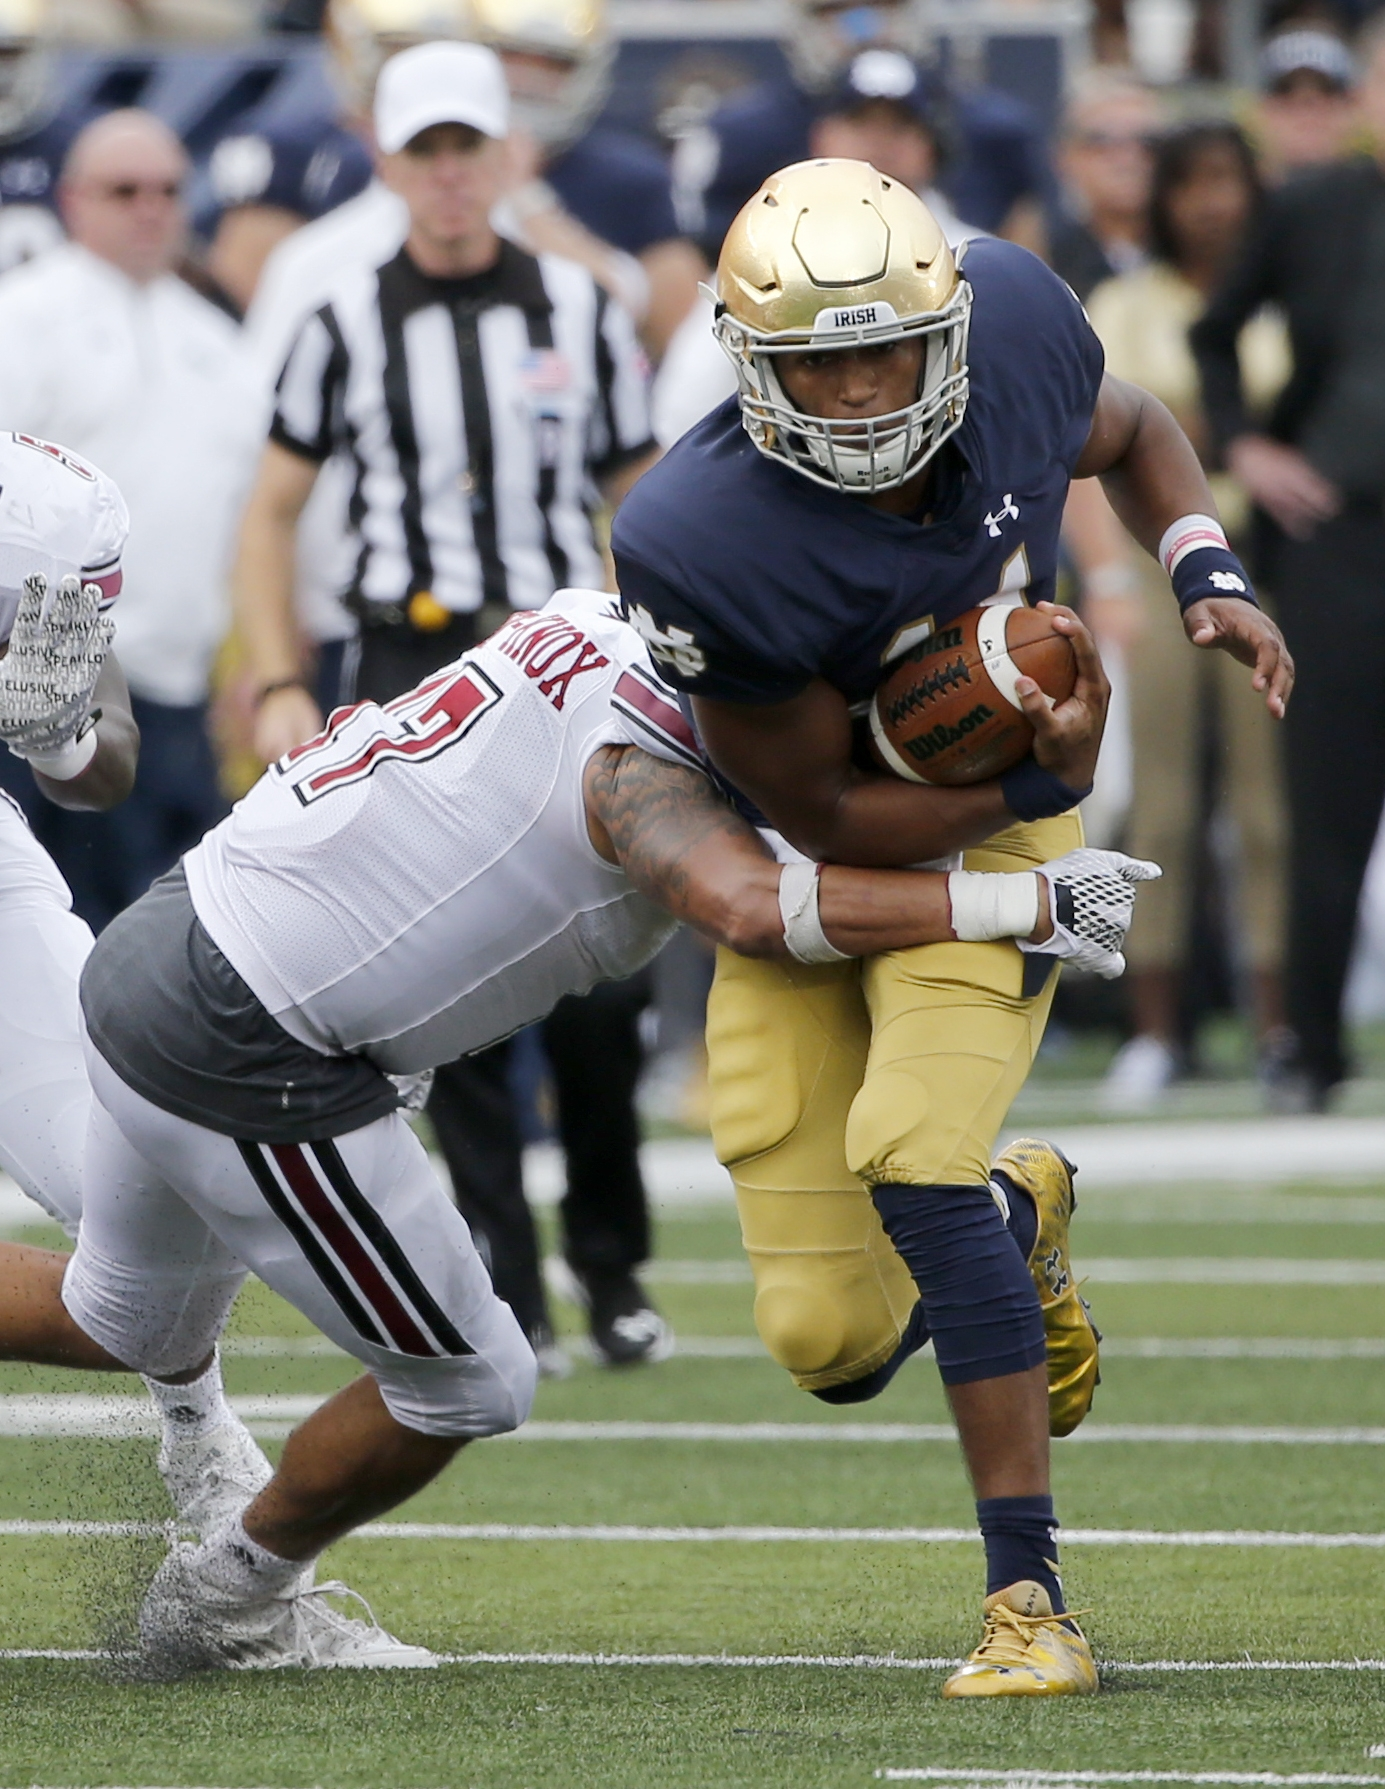 Notre Dame 's DeShone Kizer, right, tries to get past the arm of Massachusetts's Jovan Santos-Knox during the first half of an NCAA college football game Saturday, Sept. 26, 2015, in South Bend, Ind. (AP Photo/Charles Rex Arbogast)